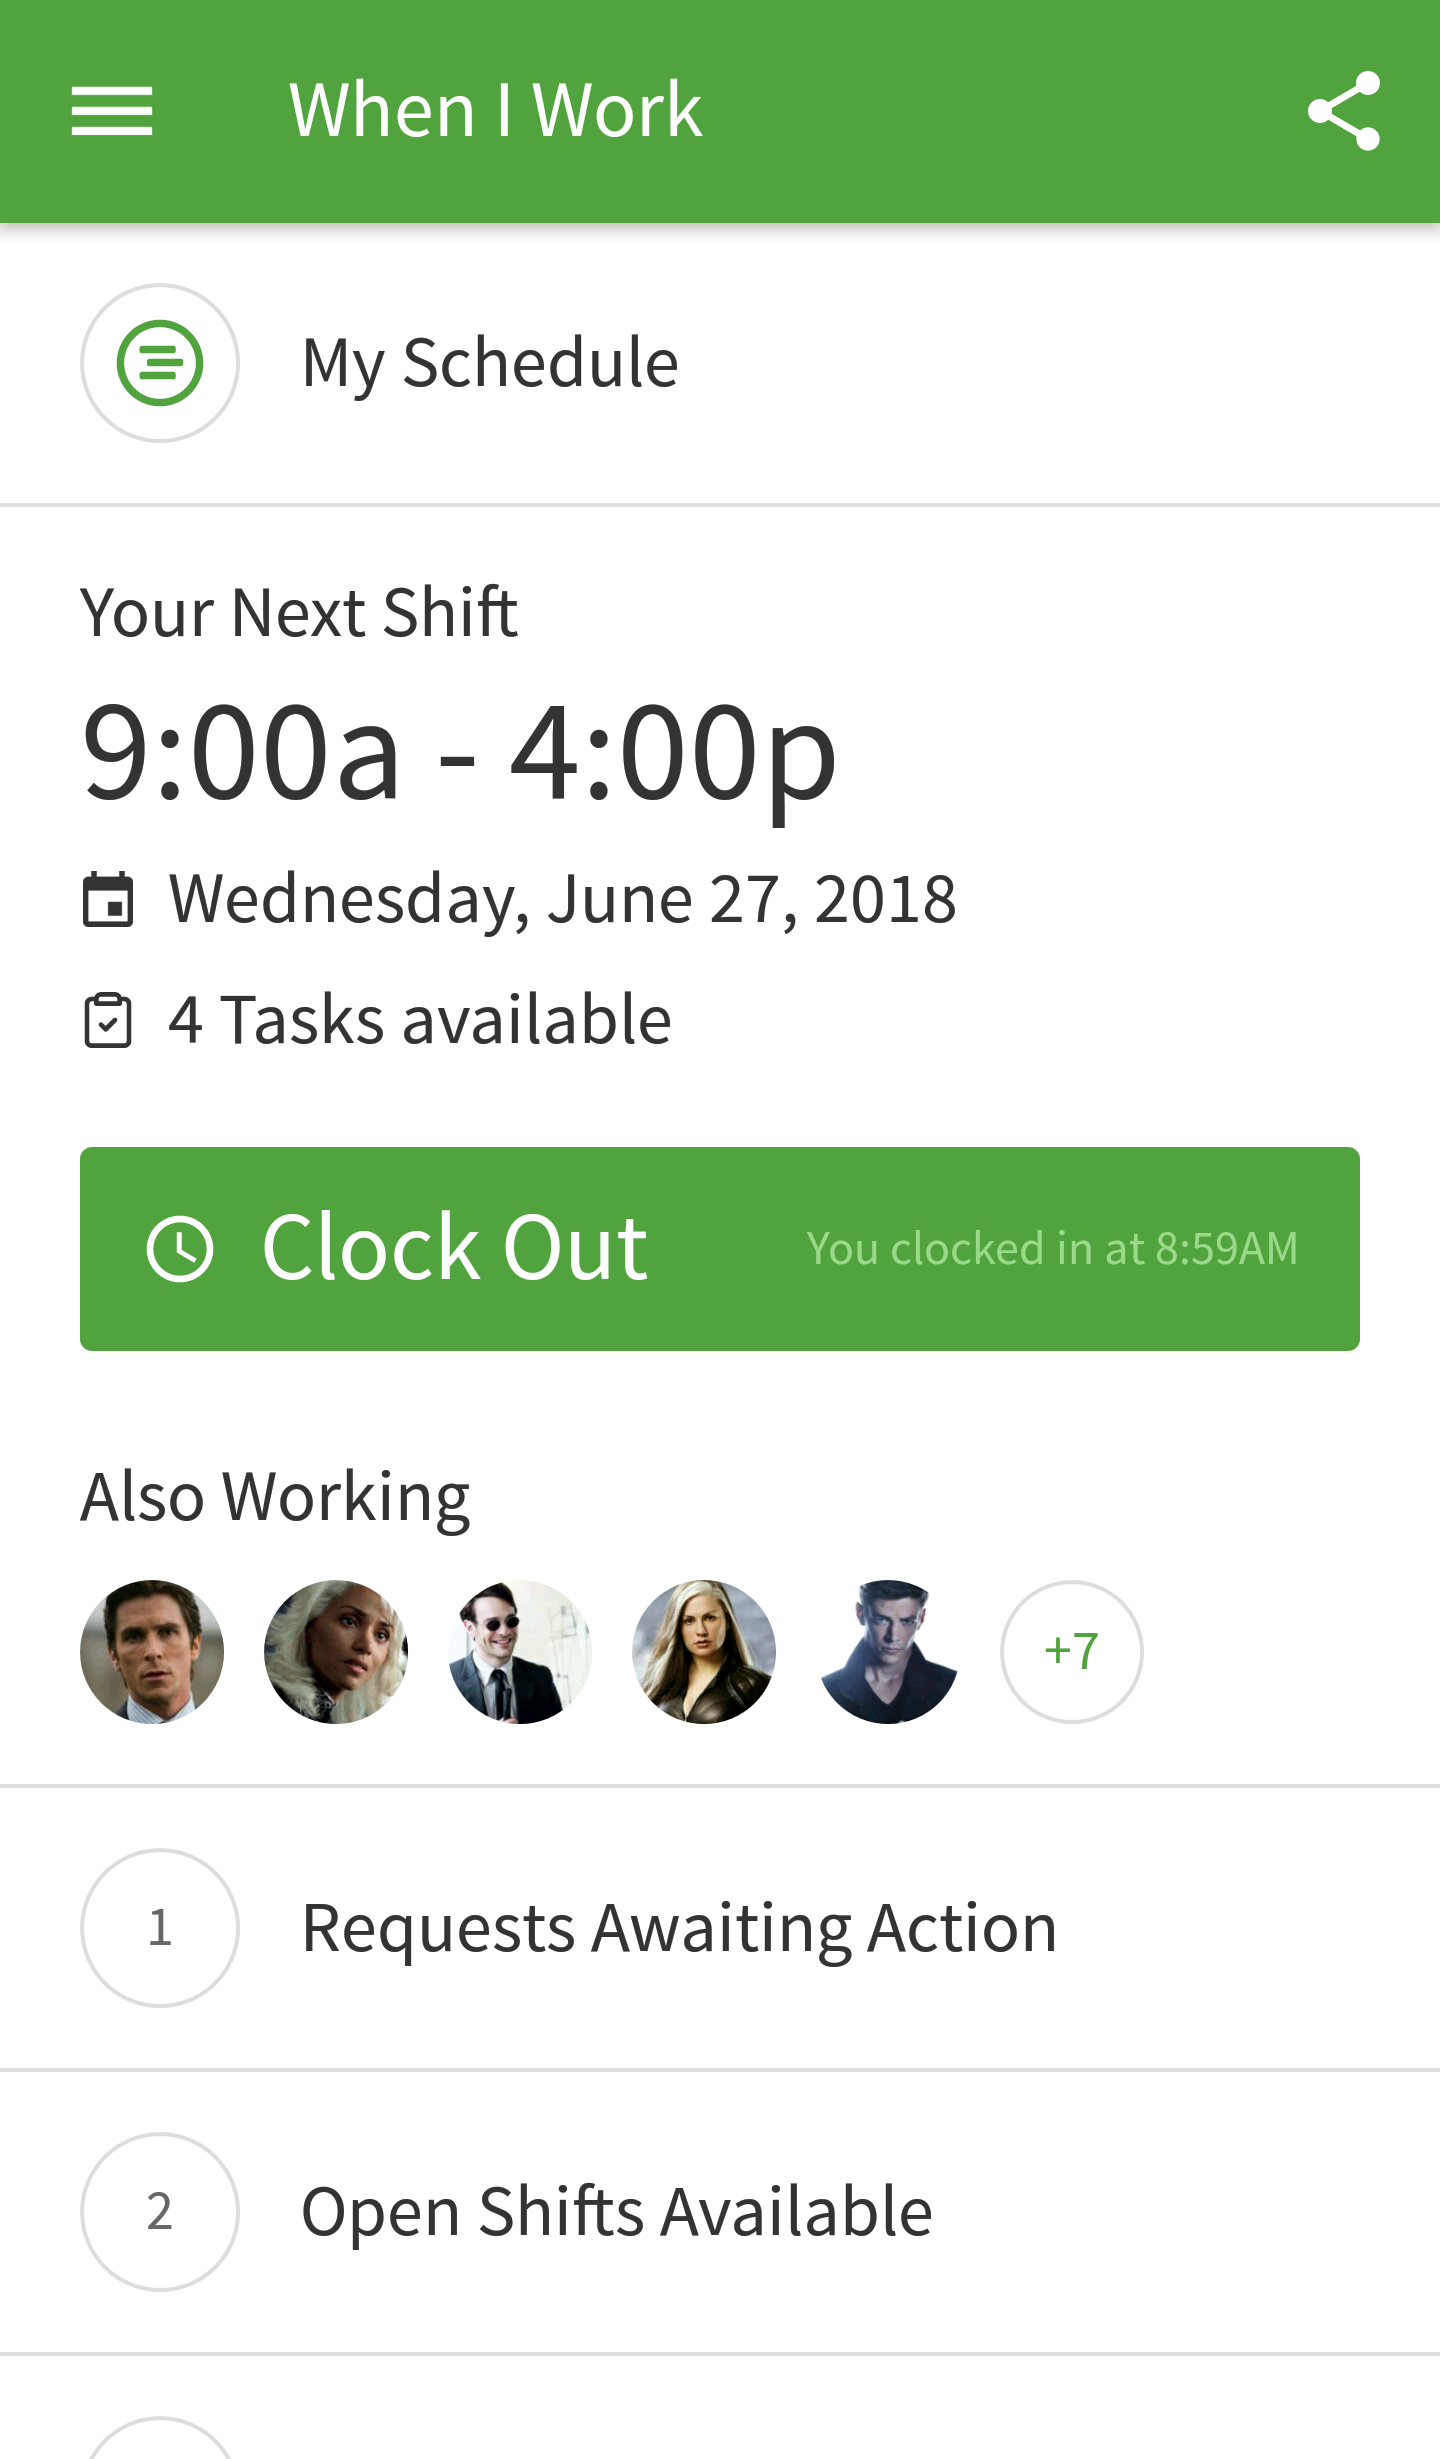 Clock Out button